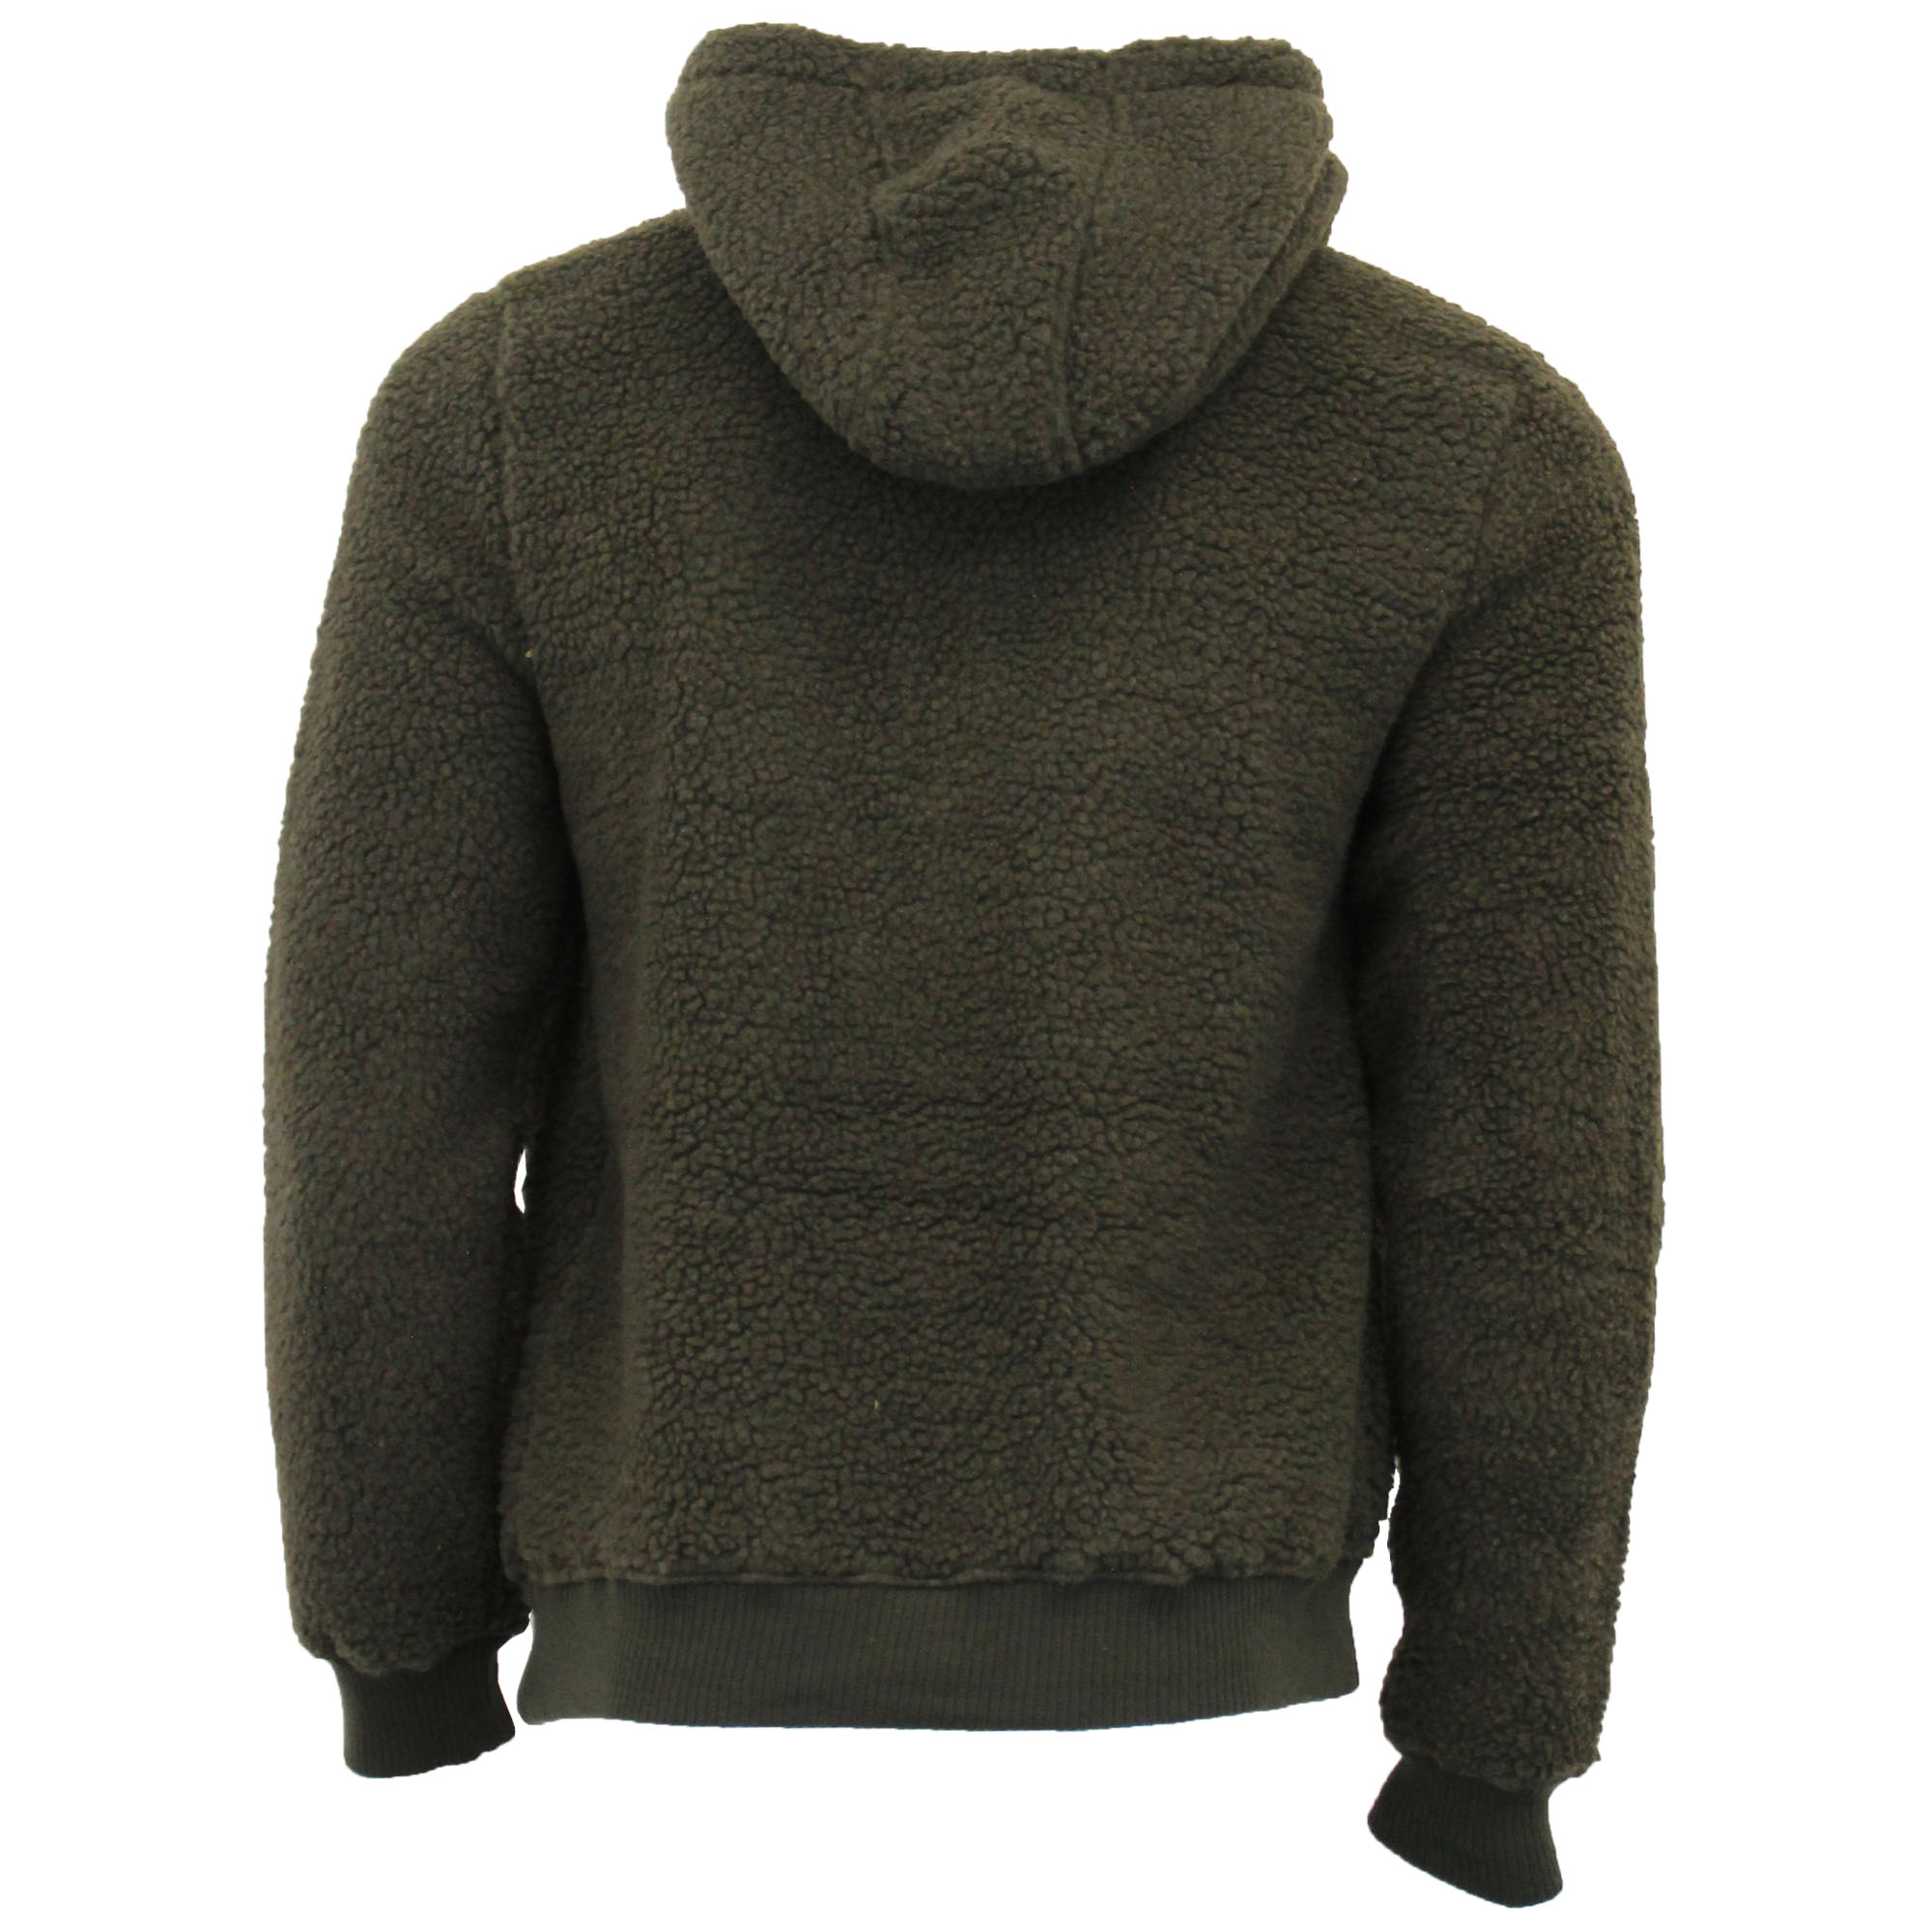 Mens-Borg-Sherpa-Fleece-Sweatshirt-Brave-Soul-DAIM-Over-The-Head-Hooded-Top-Warm thumbnail 7